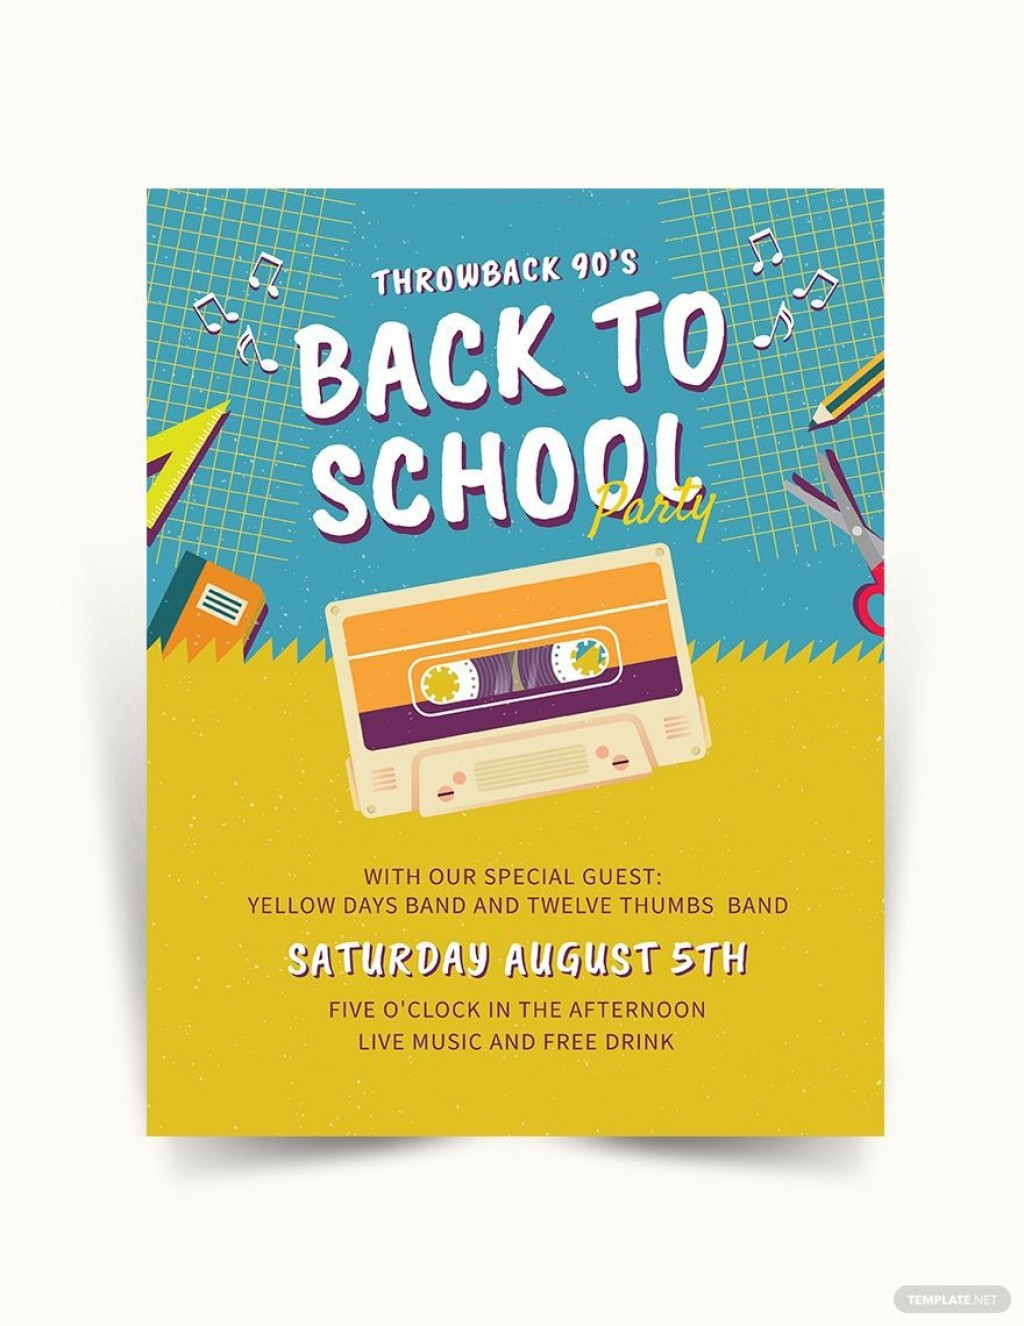 005 Rare Free Back To School Flyer Template Word Idea Large